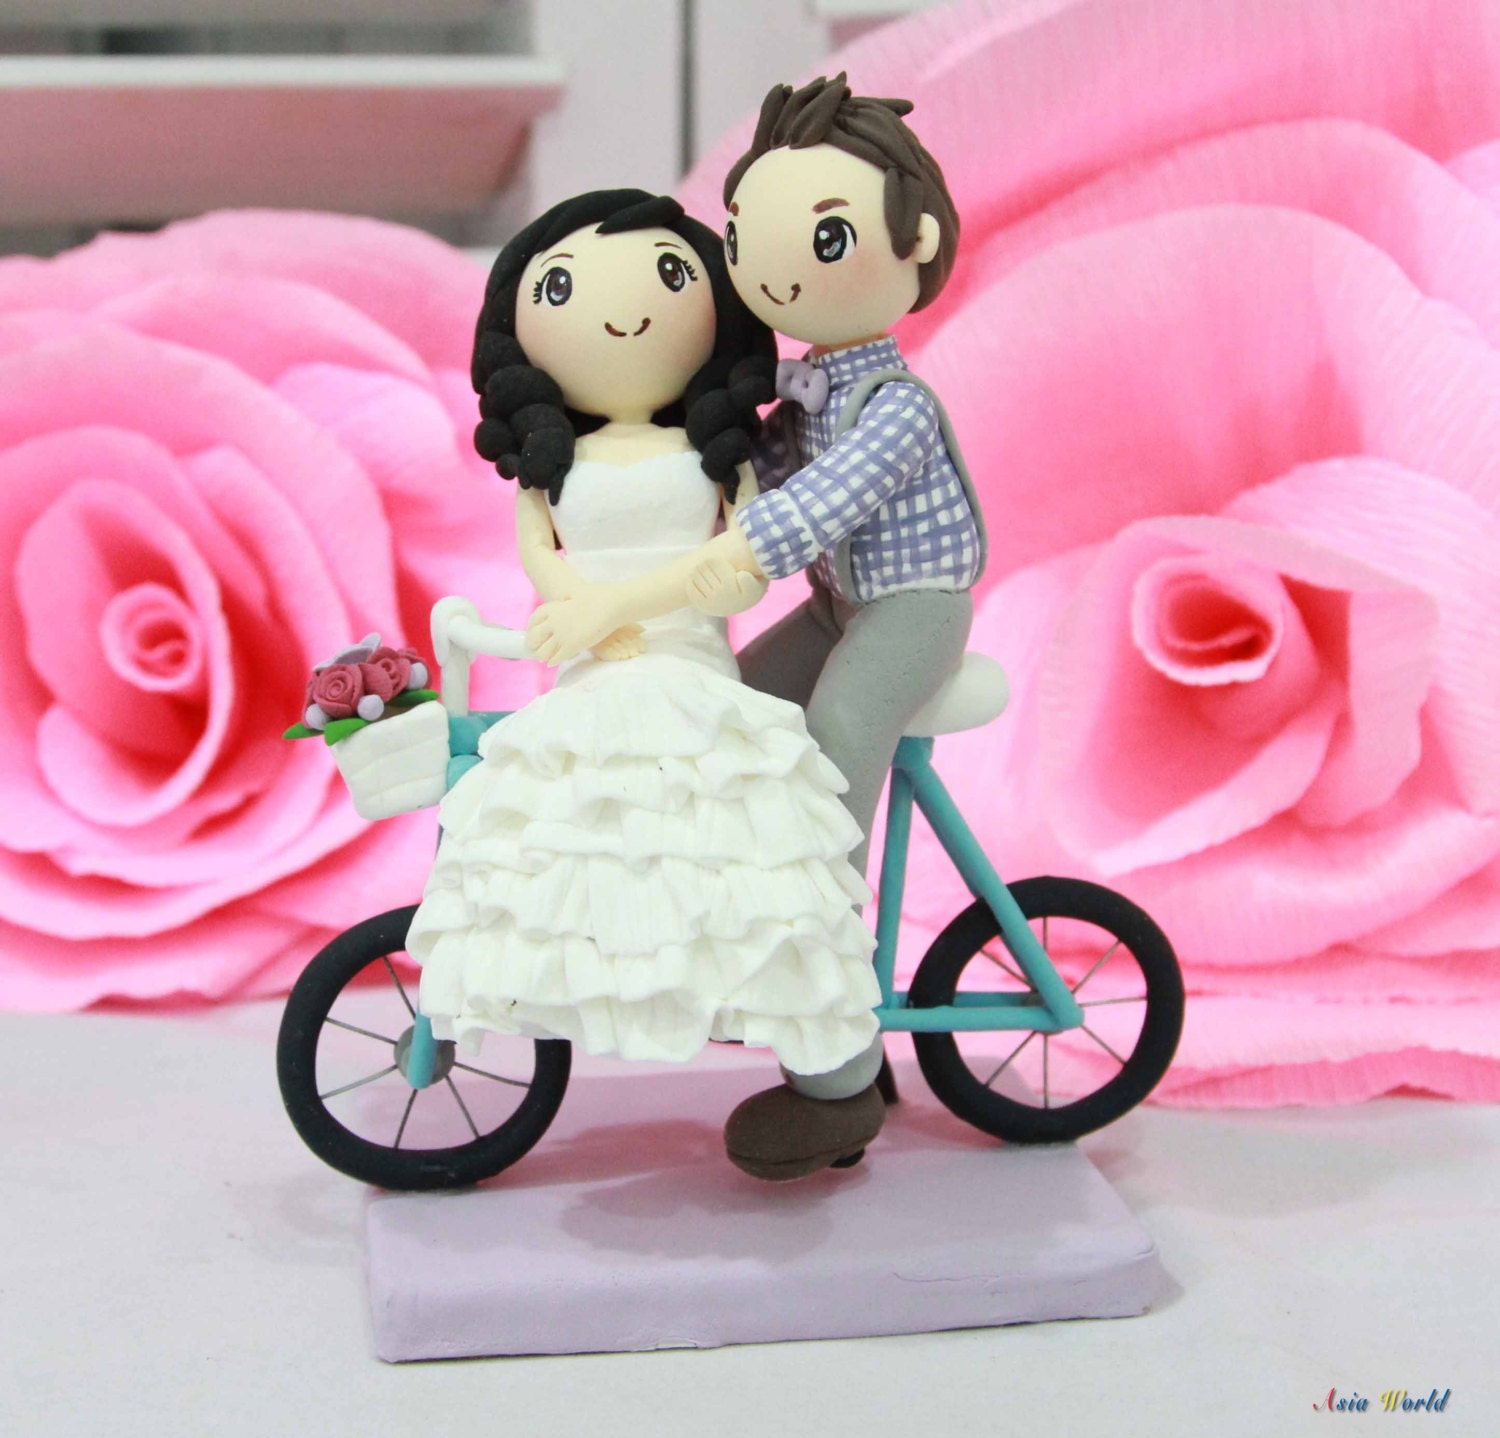 Wedding cake topper bicycle wedding couple with check shirt | Etsy